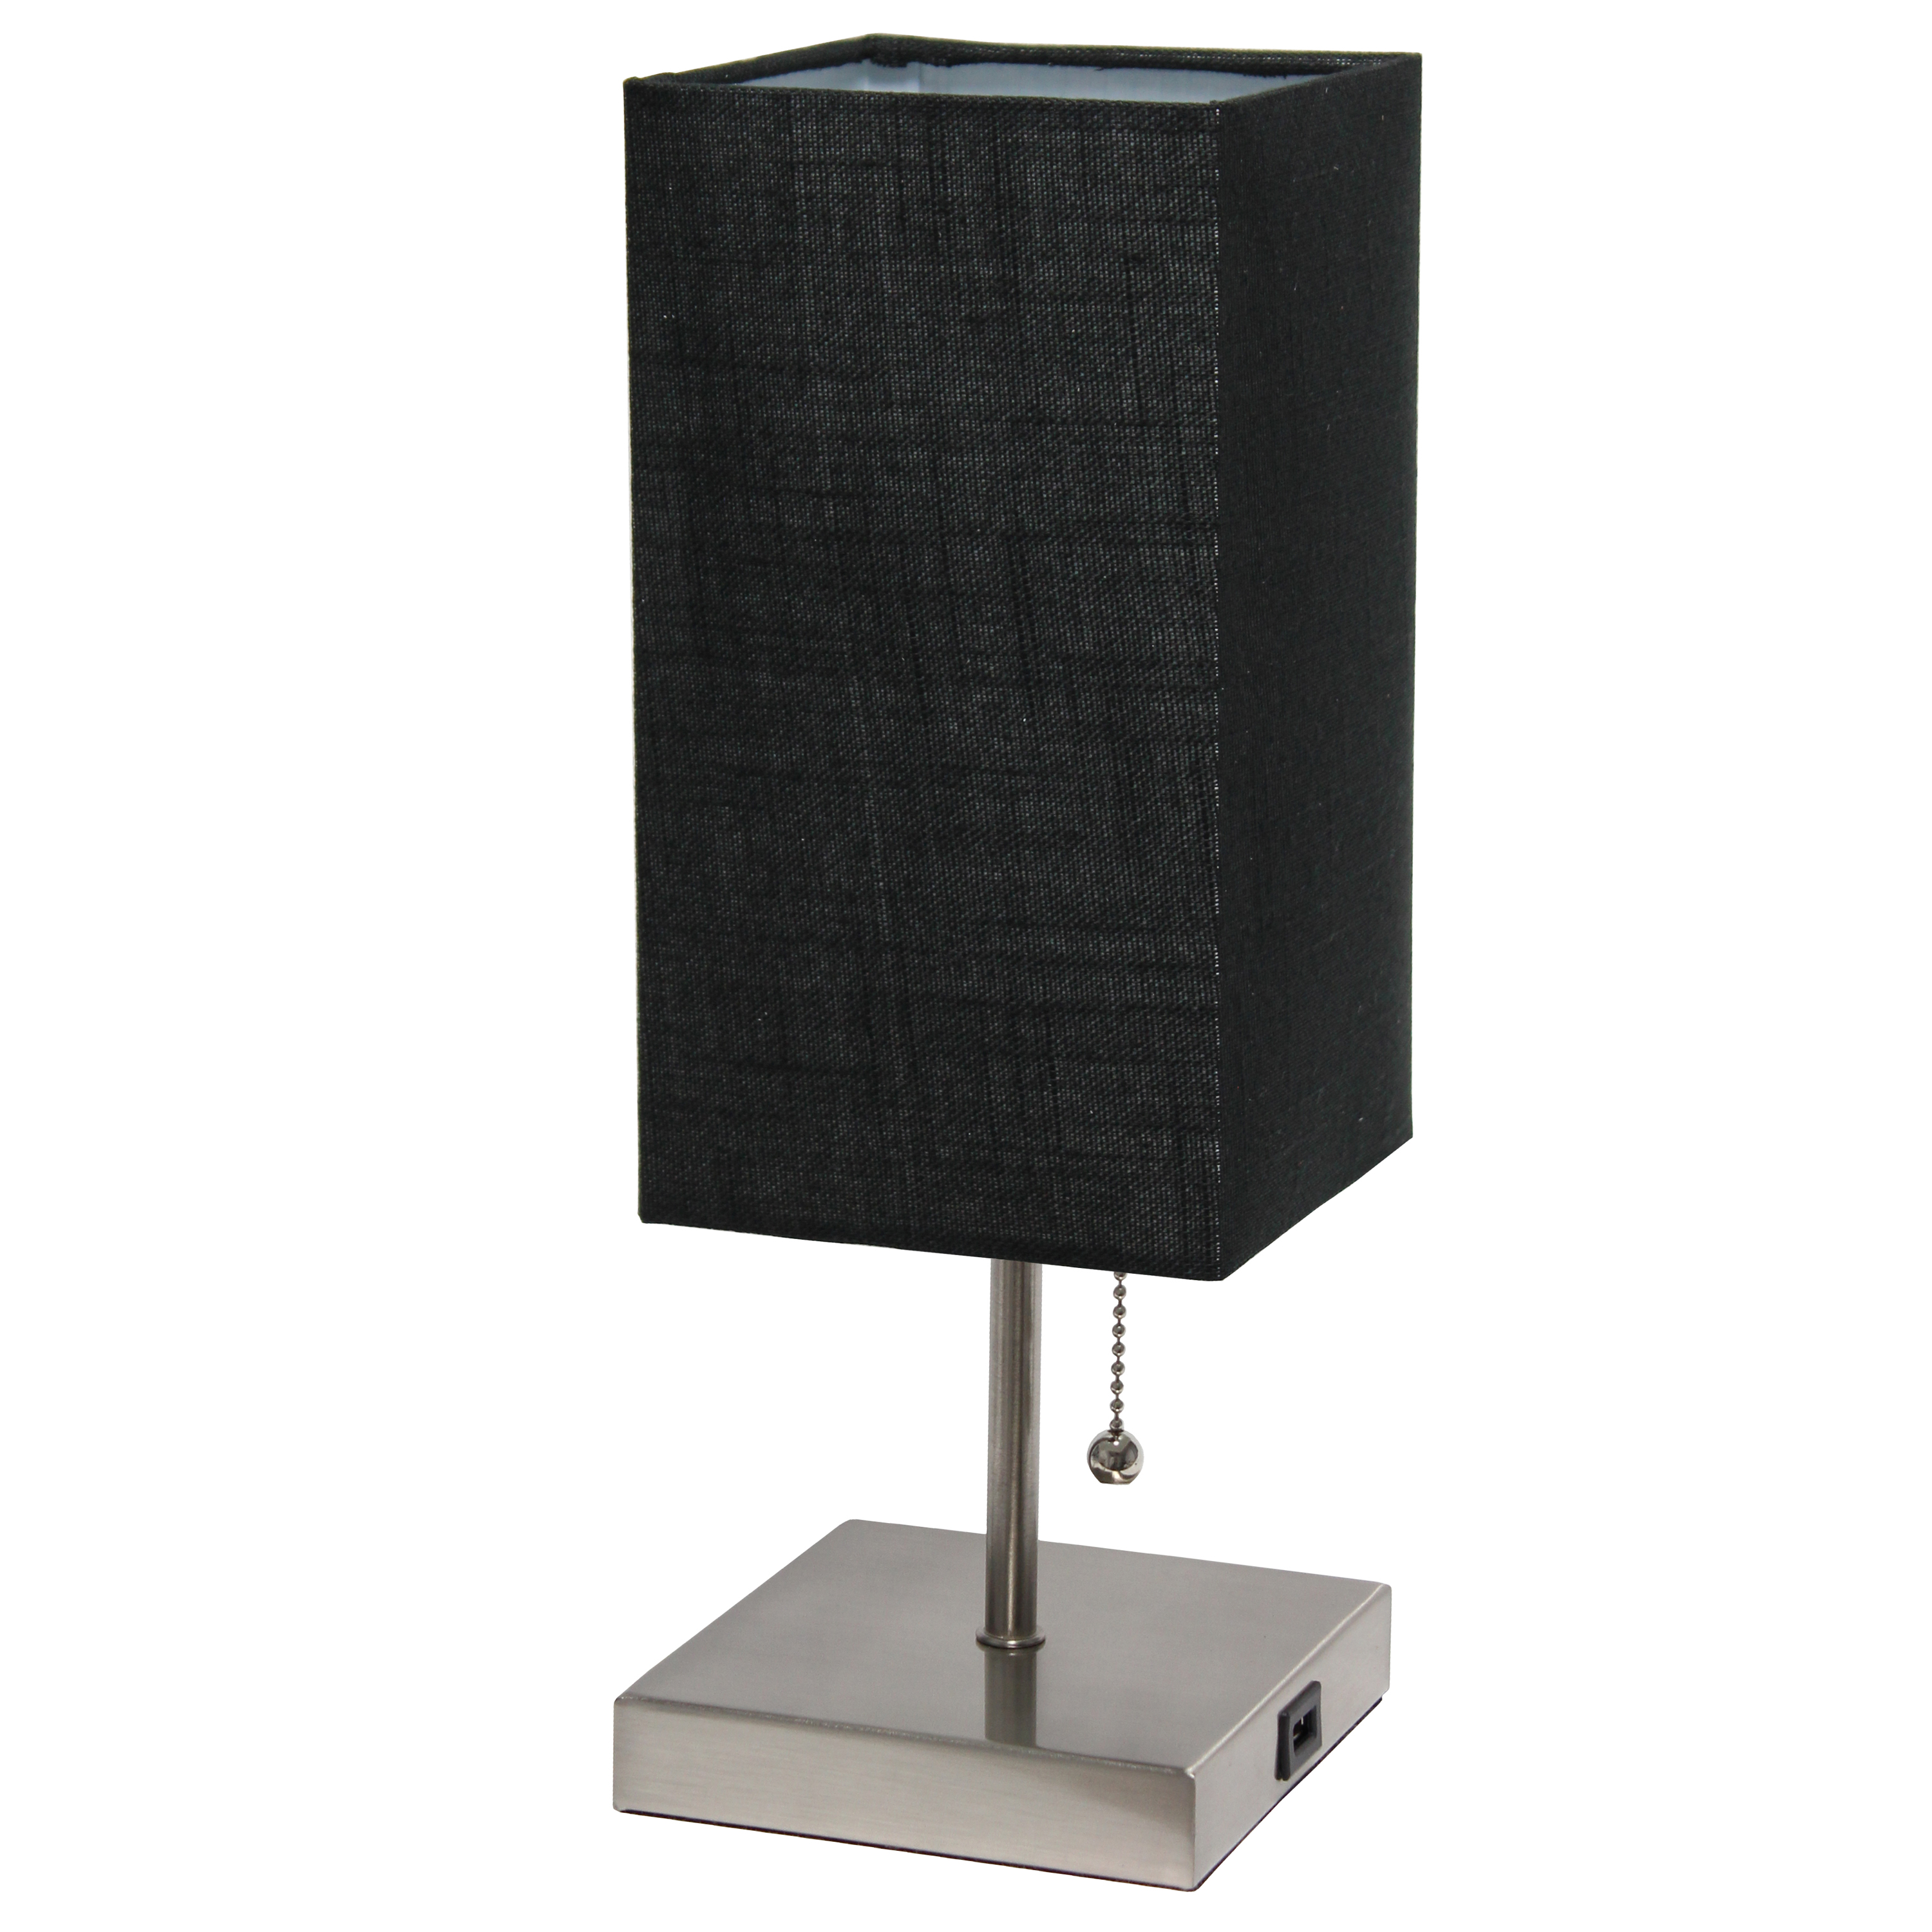 Simple Designs Petite Stick Lamp with USB Charging Port and Fabric Shade, Black